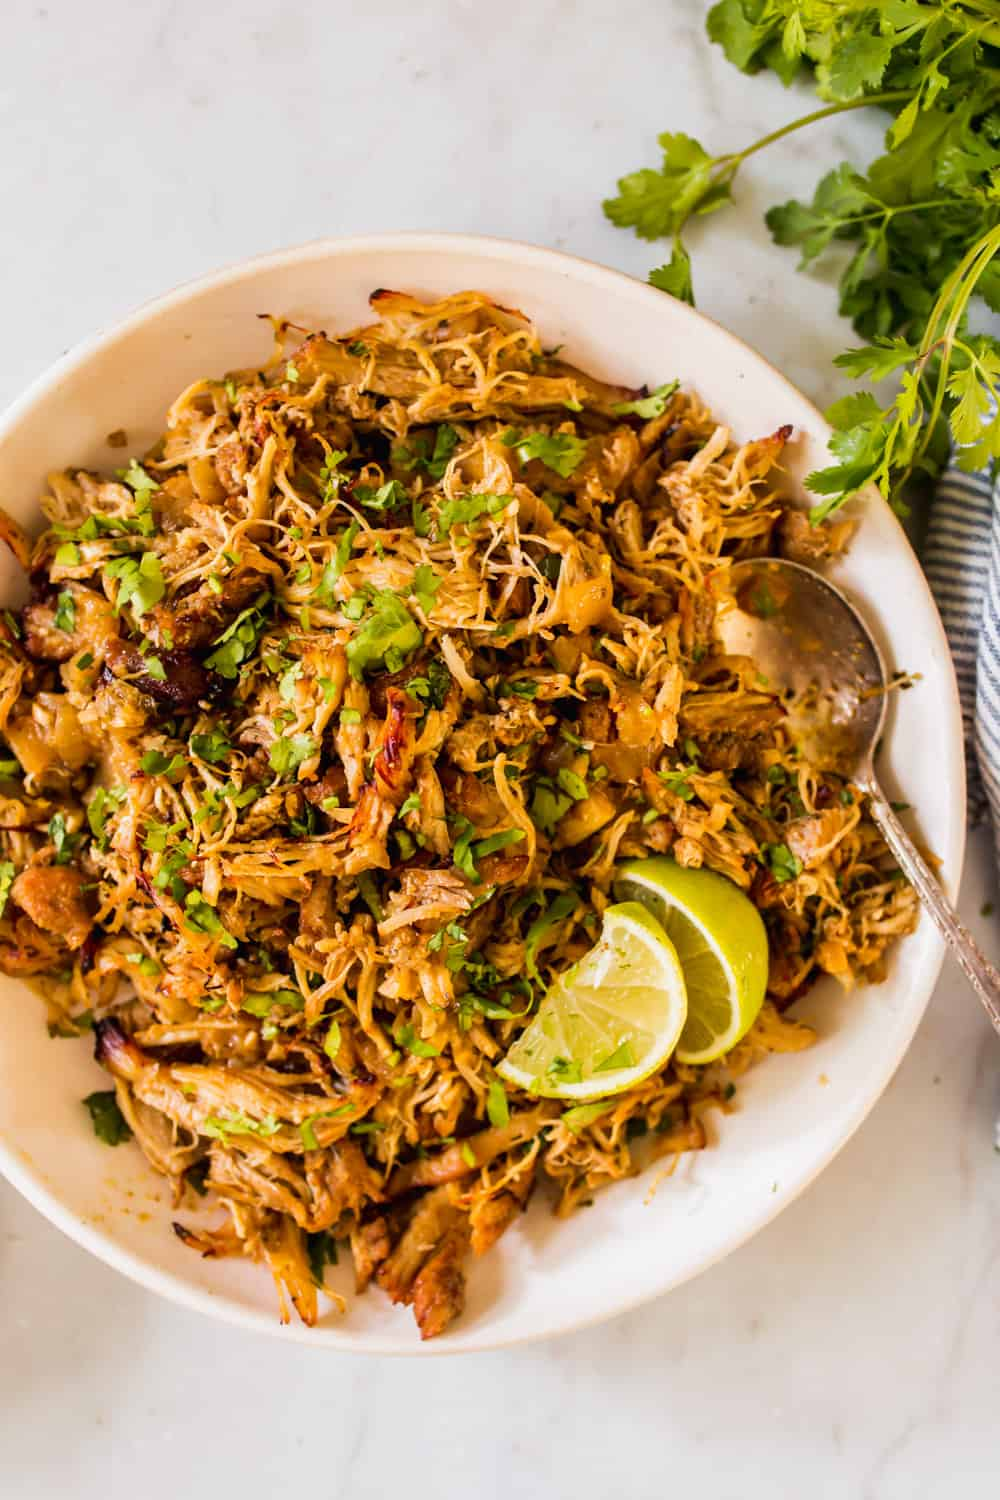 large white bowl filled with browned shredded chicken